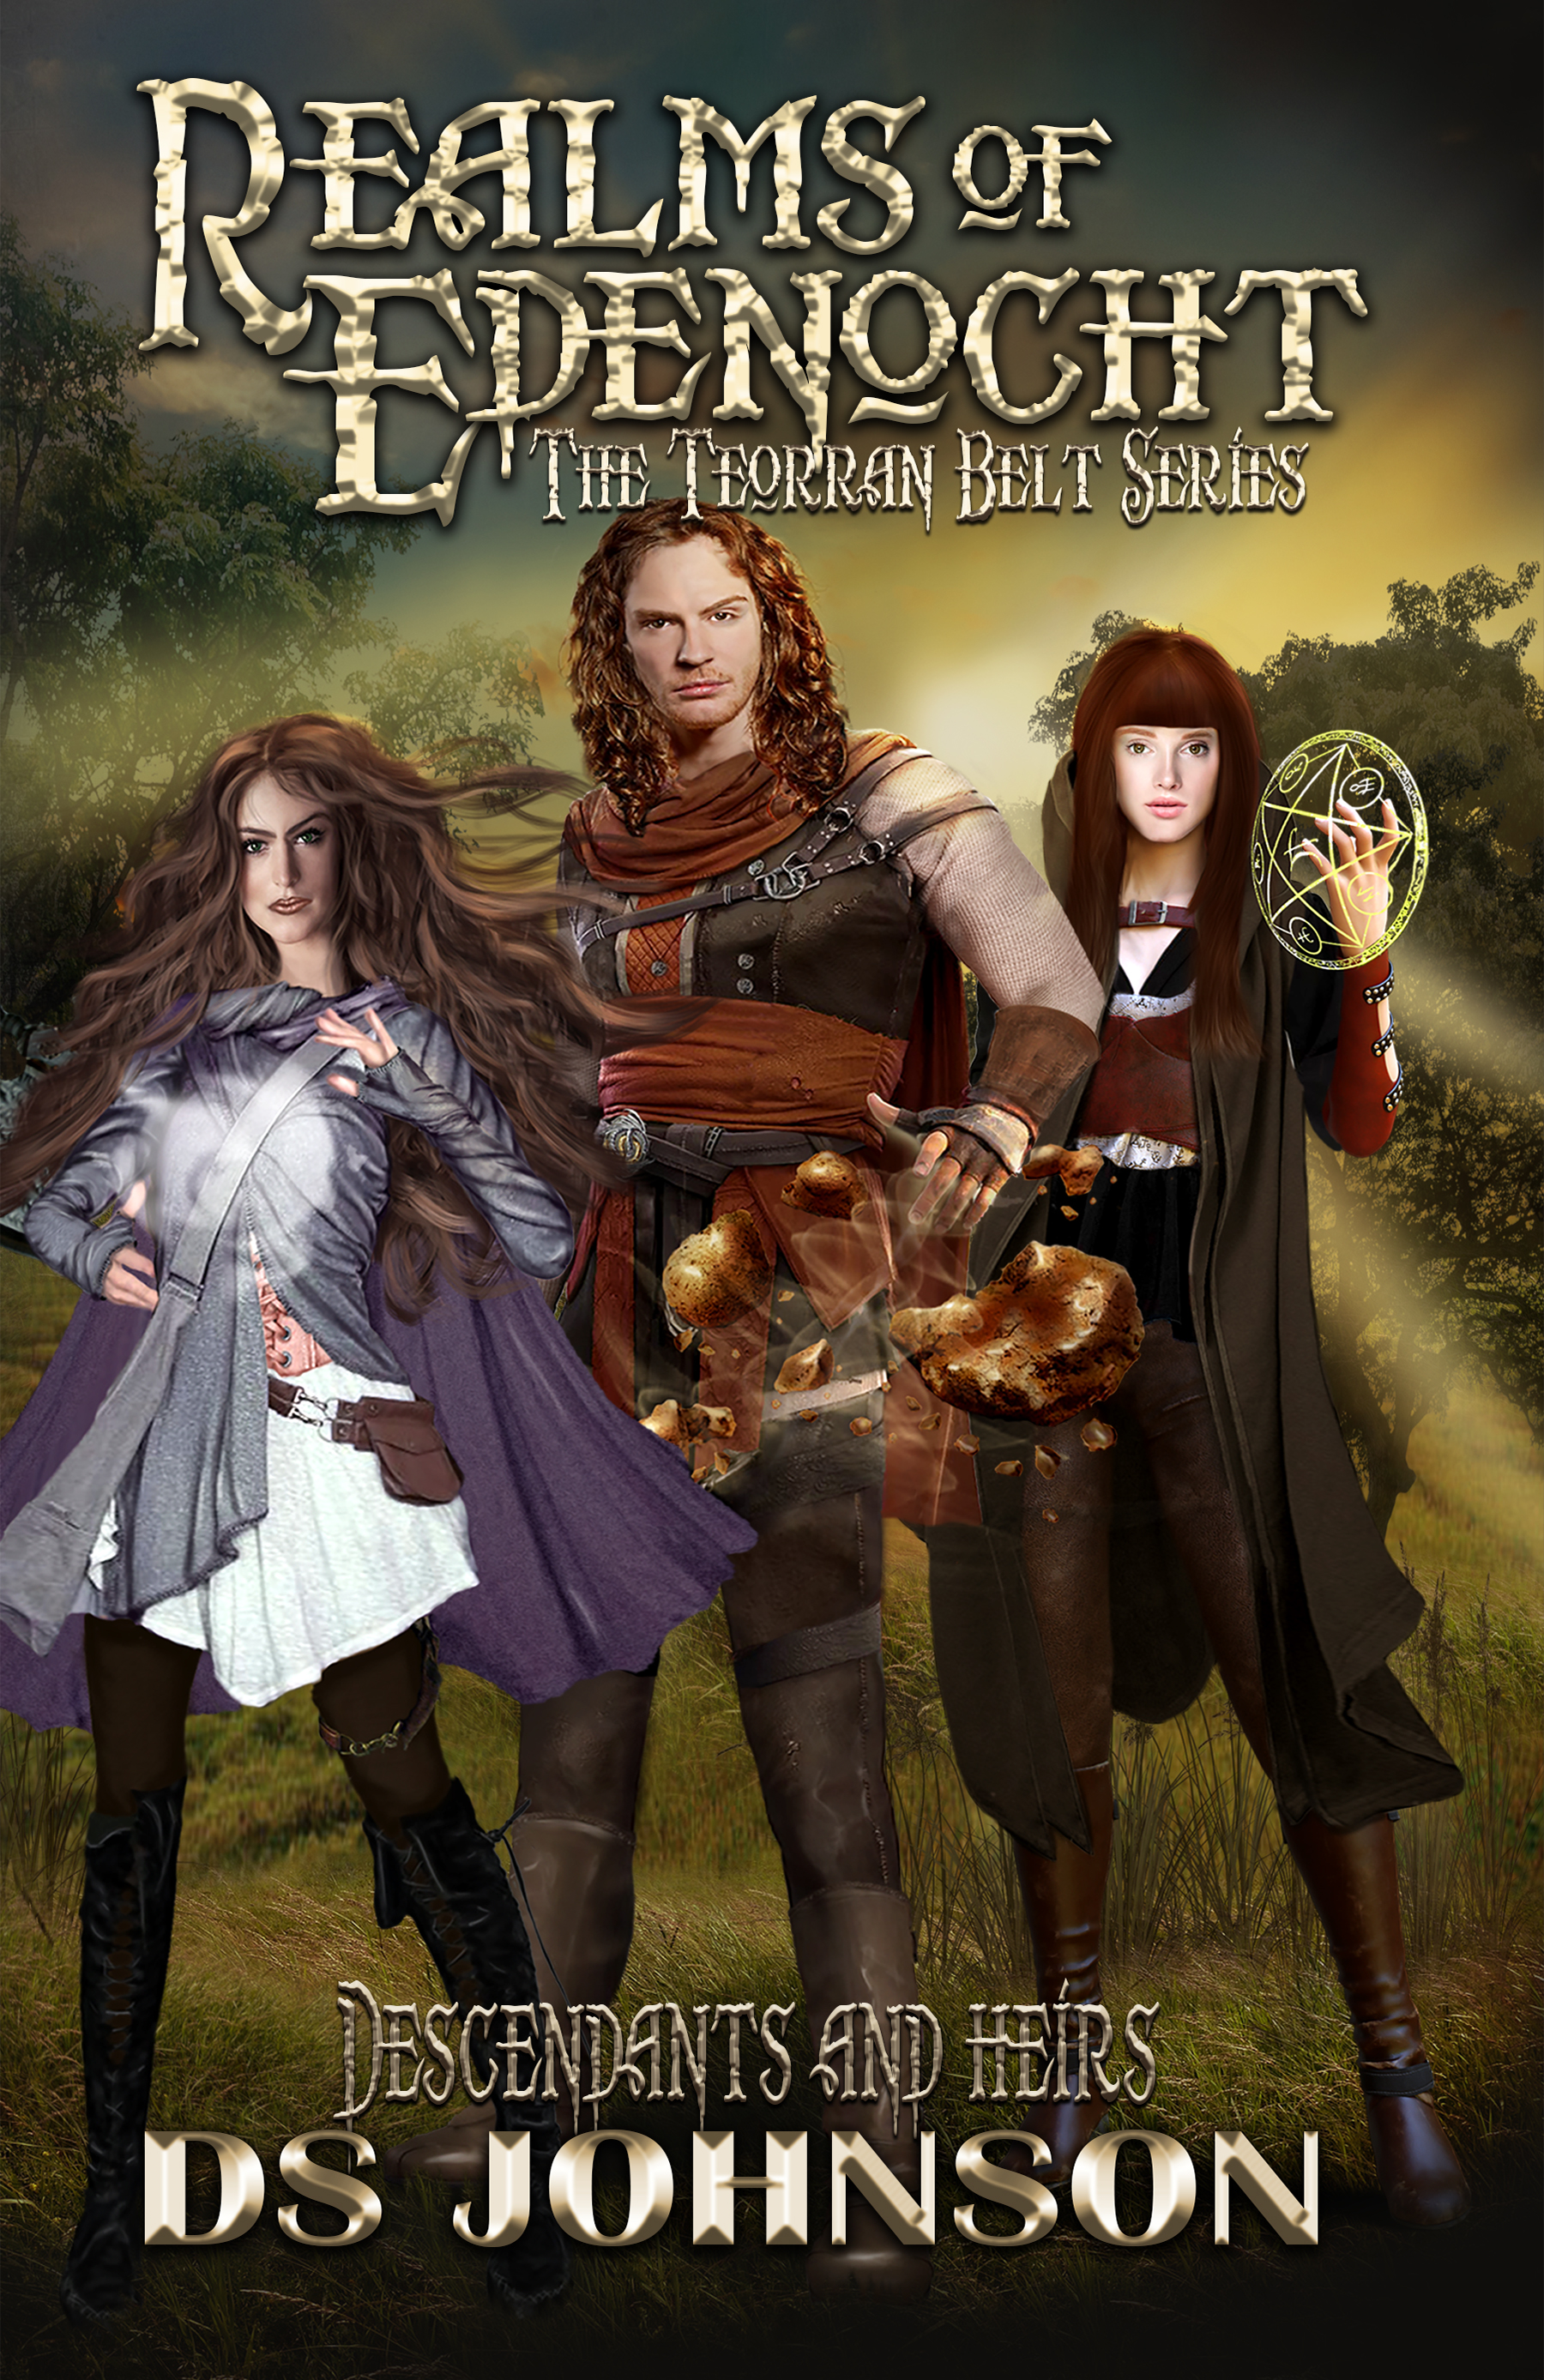 Realms of Edenocht: Descendants and Heirs covers